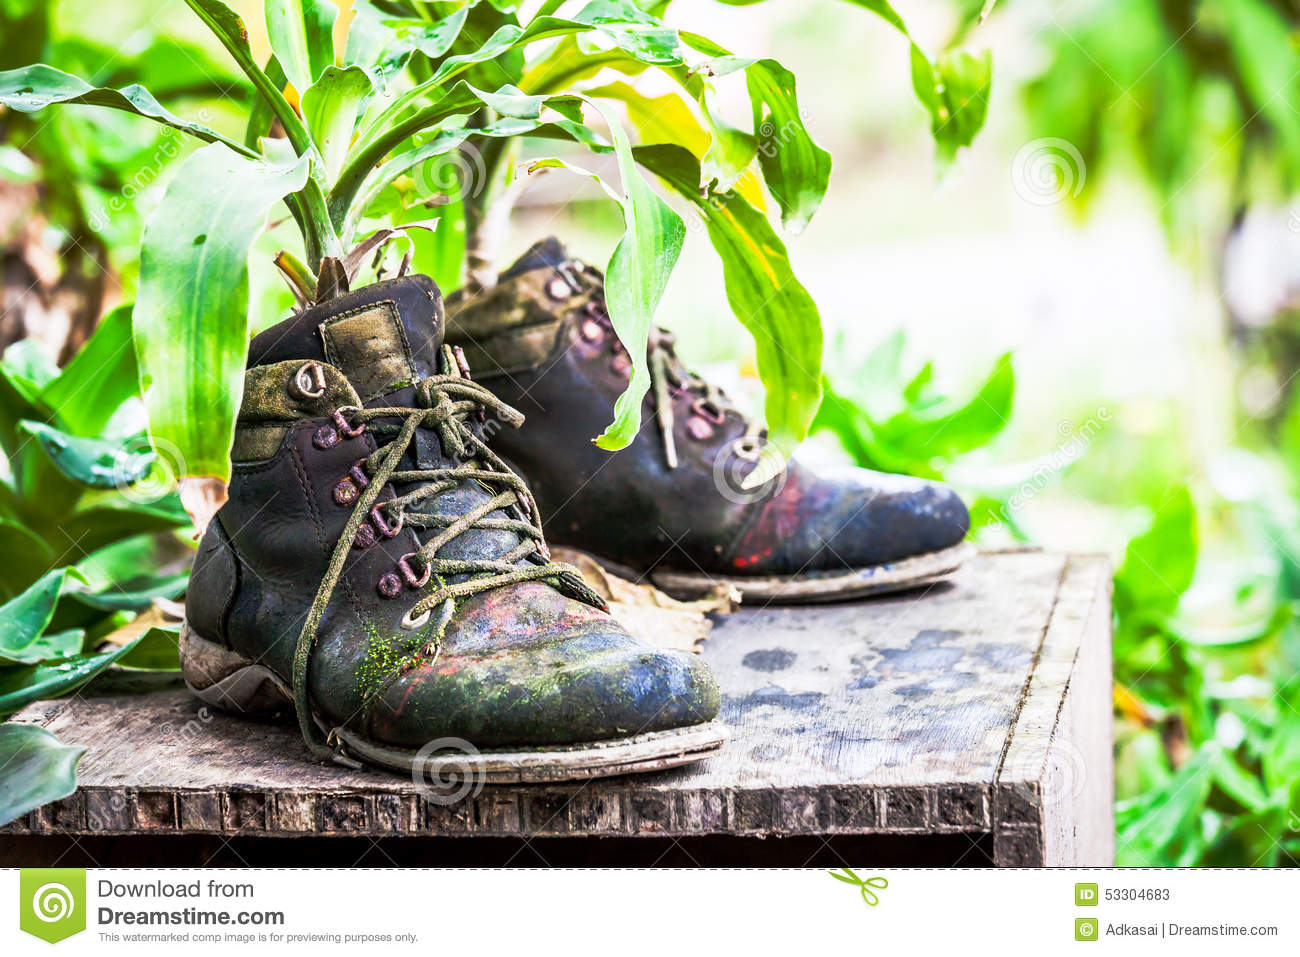 Outdoor ornamental plants - Ornamental Plants On Old Shoes